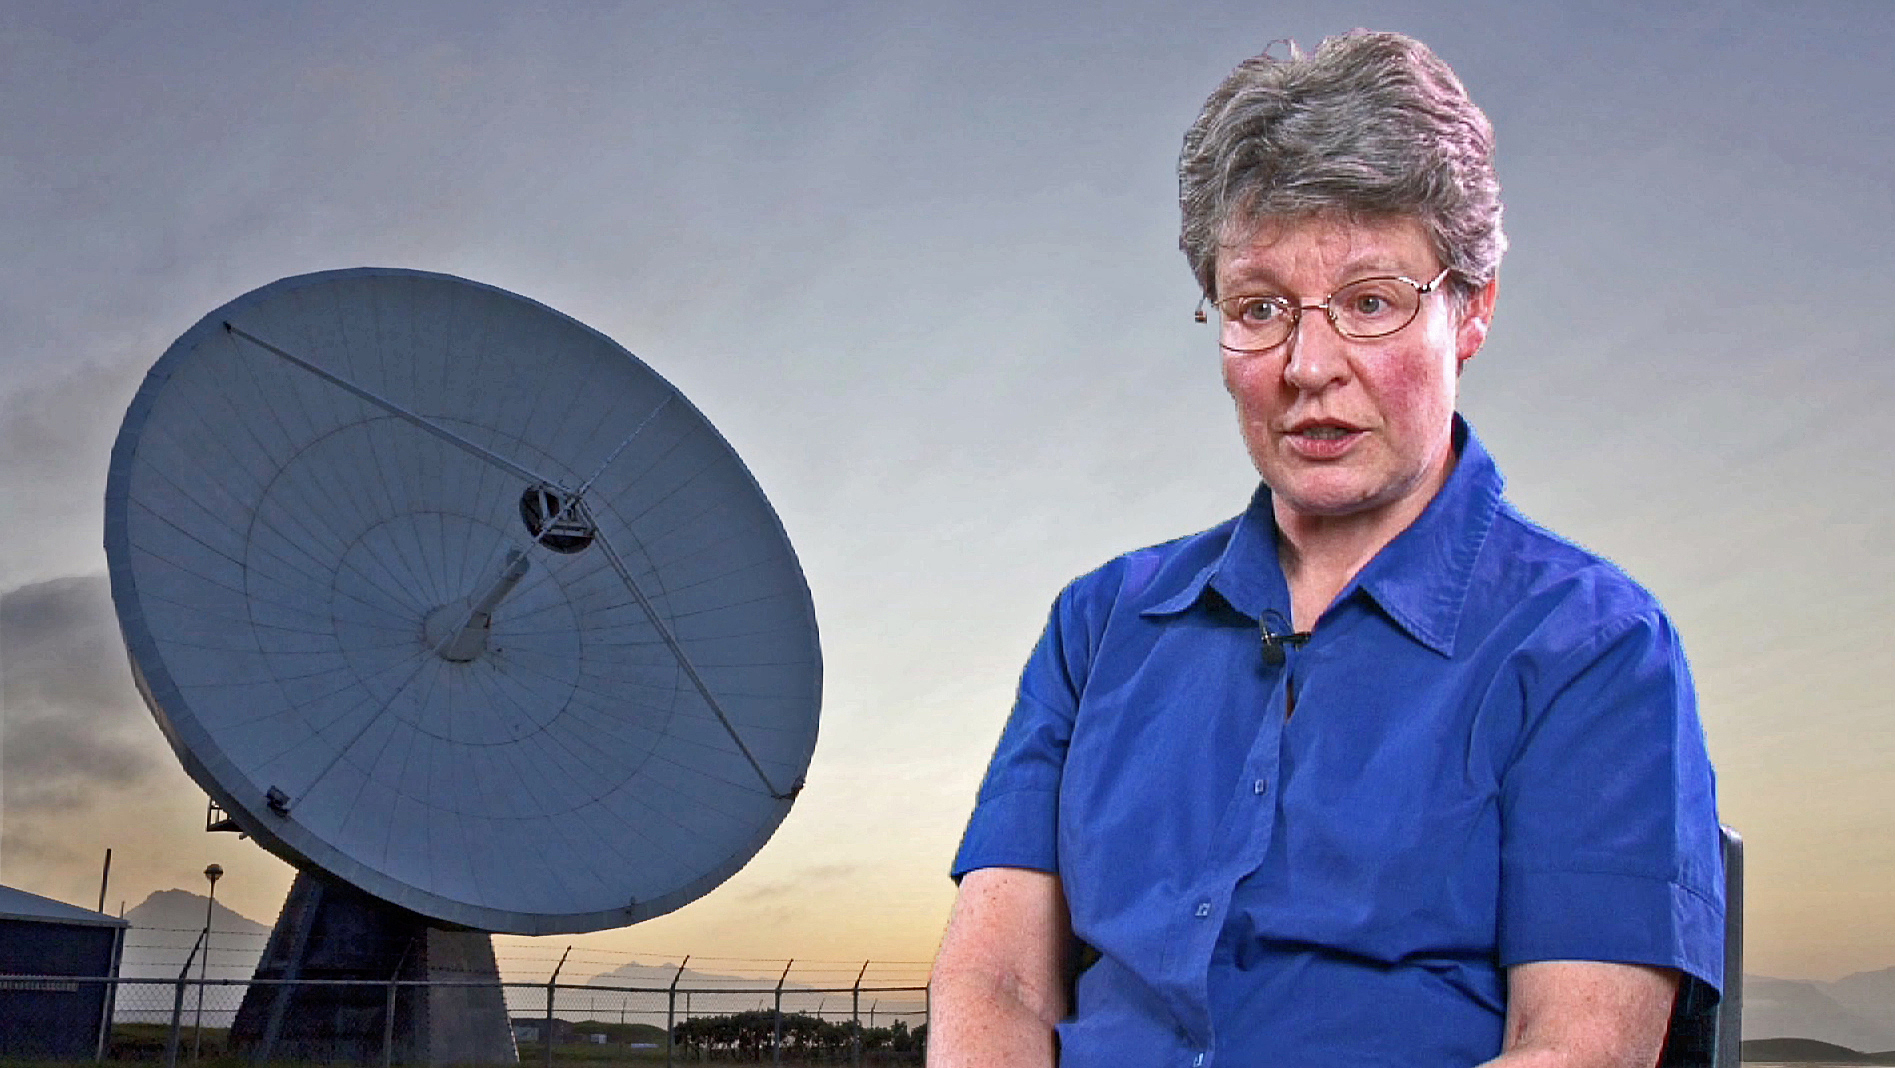 Interviewing the Astrophysicist Dame Jocelyn Burnell